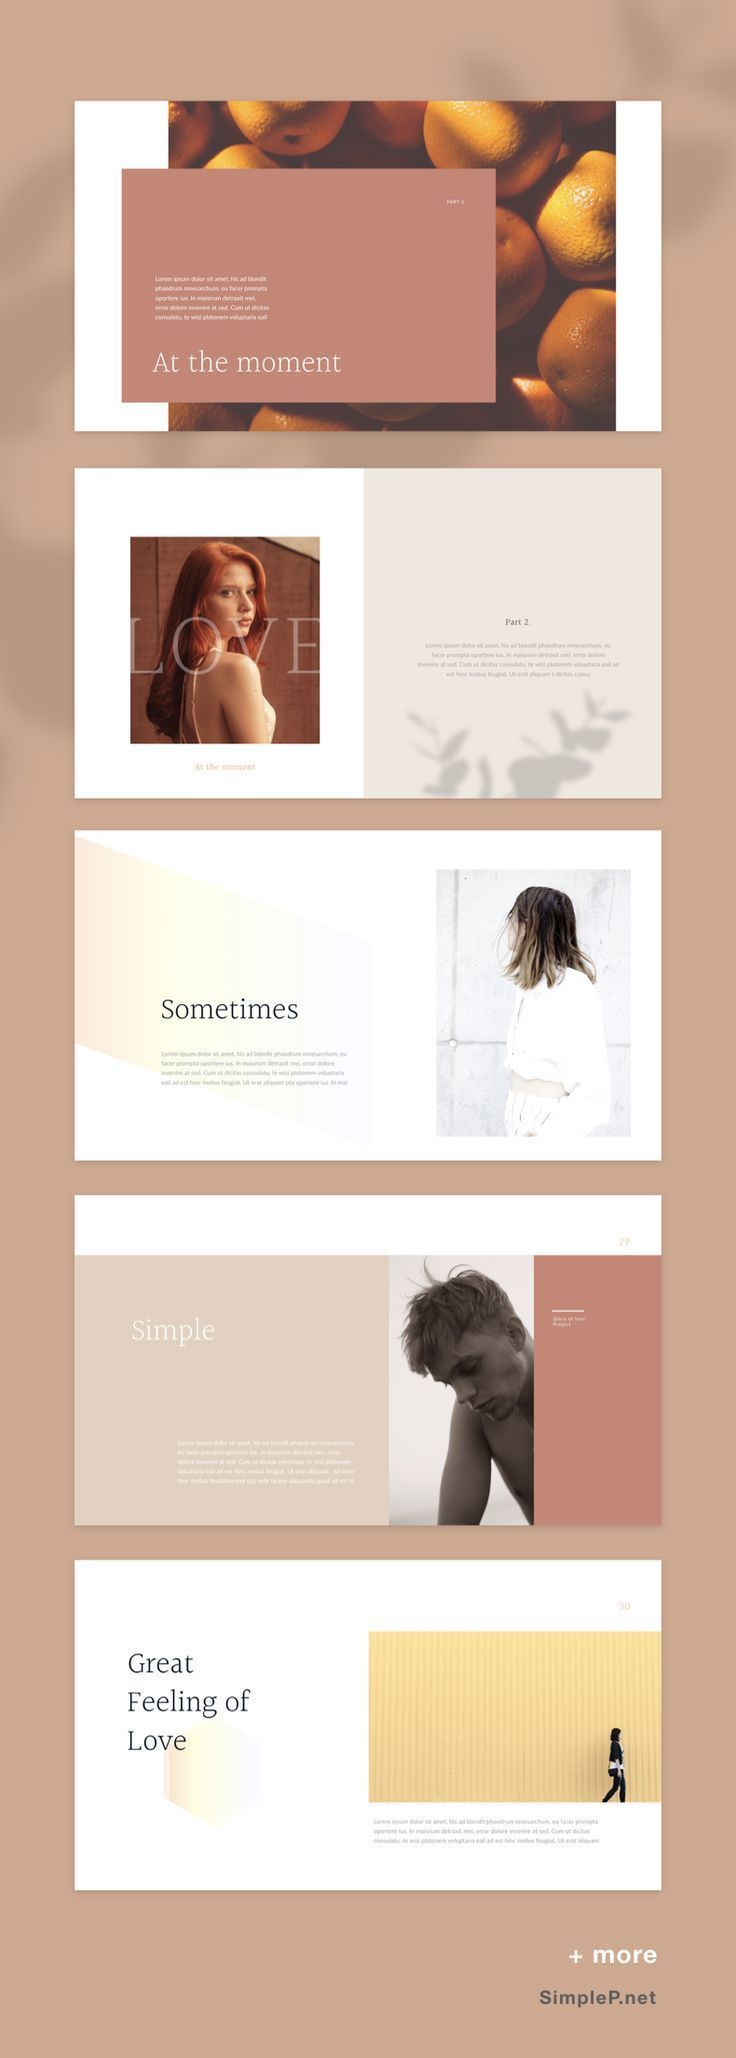 PPT PowerPoint Presentation Template #glory #fall … – #Fall #Glory #portfolio